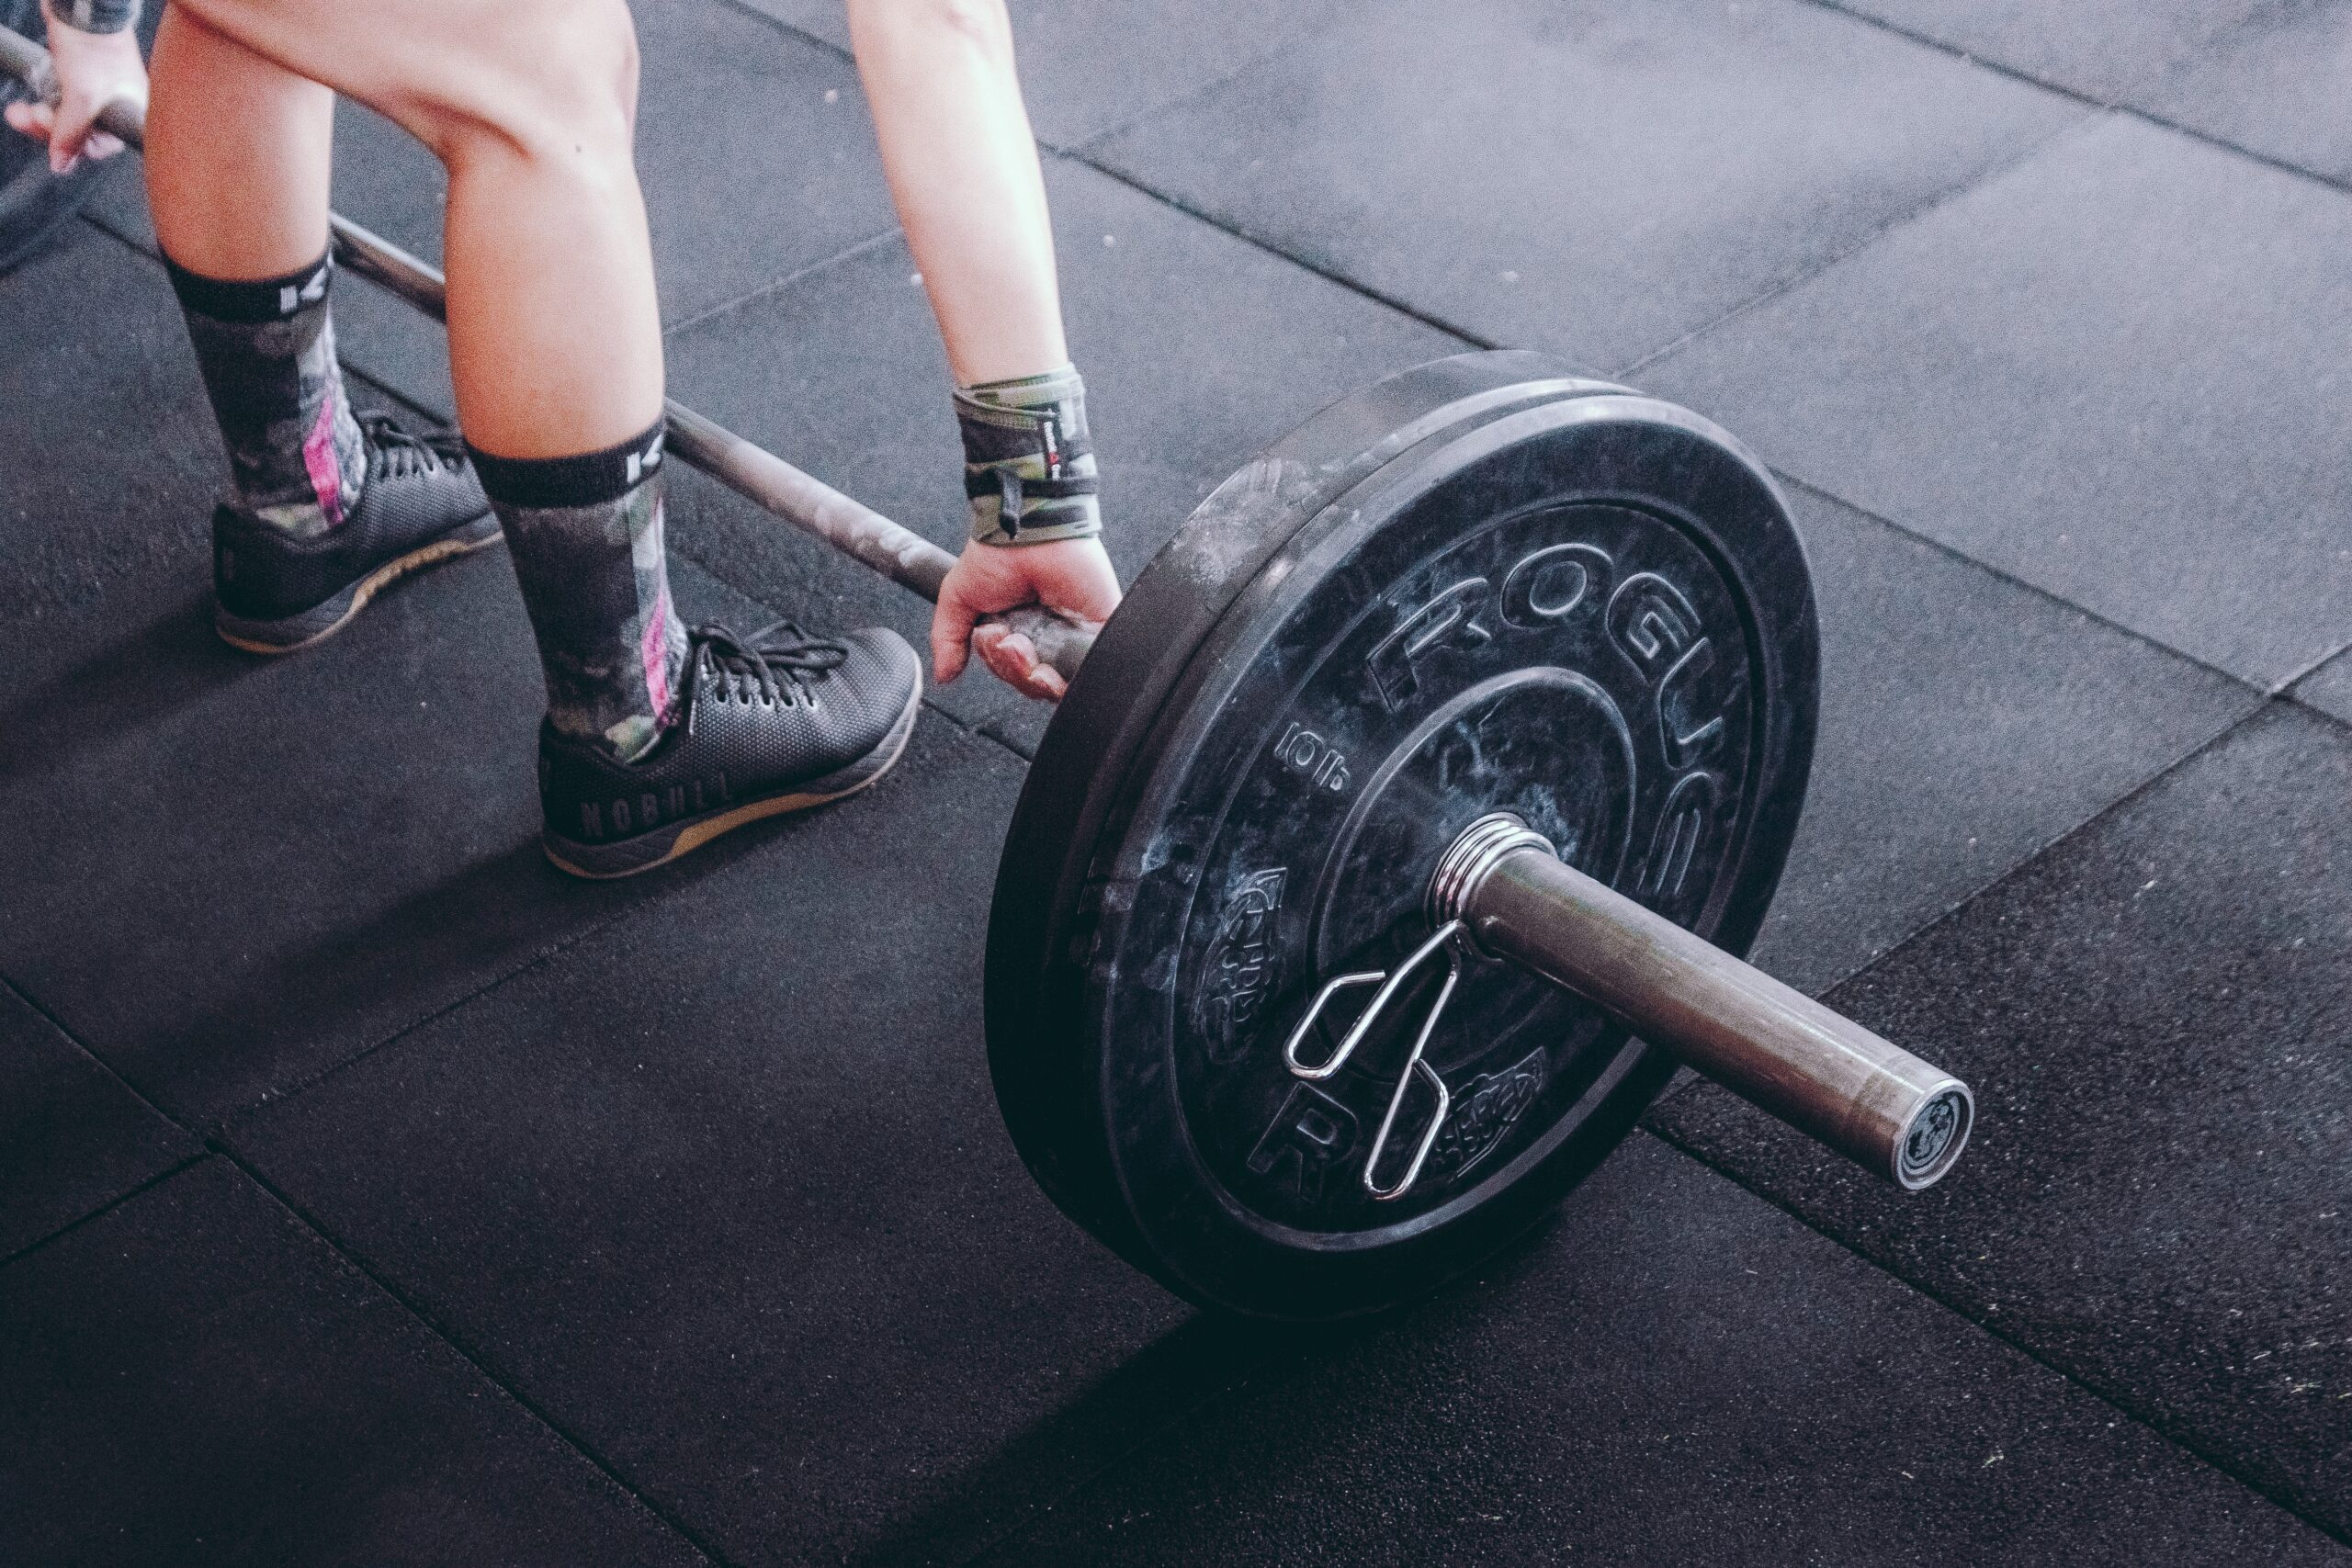 toronto chiropractor talks about back pain from lifting